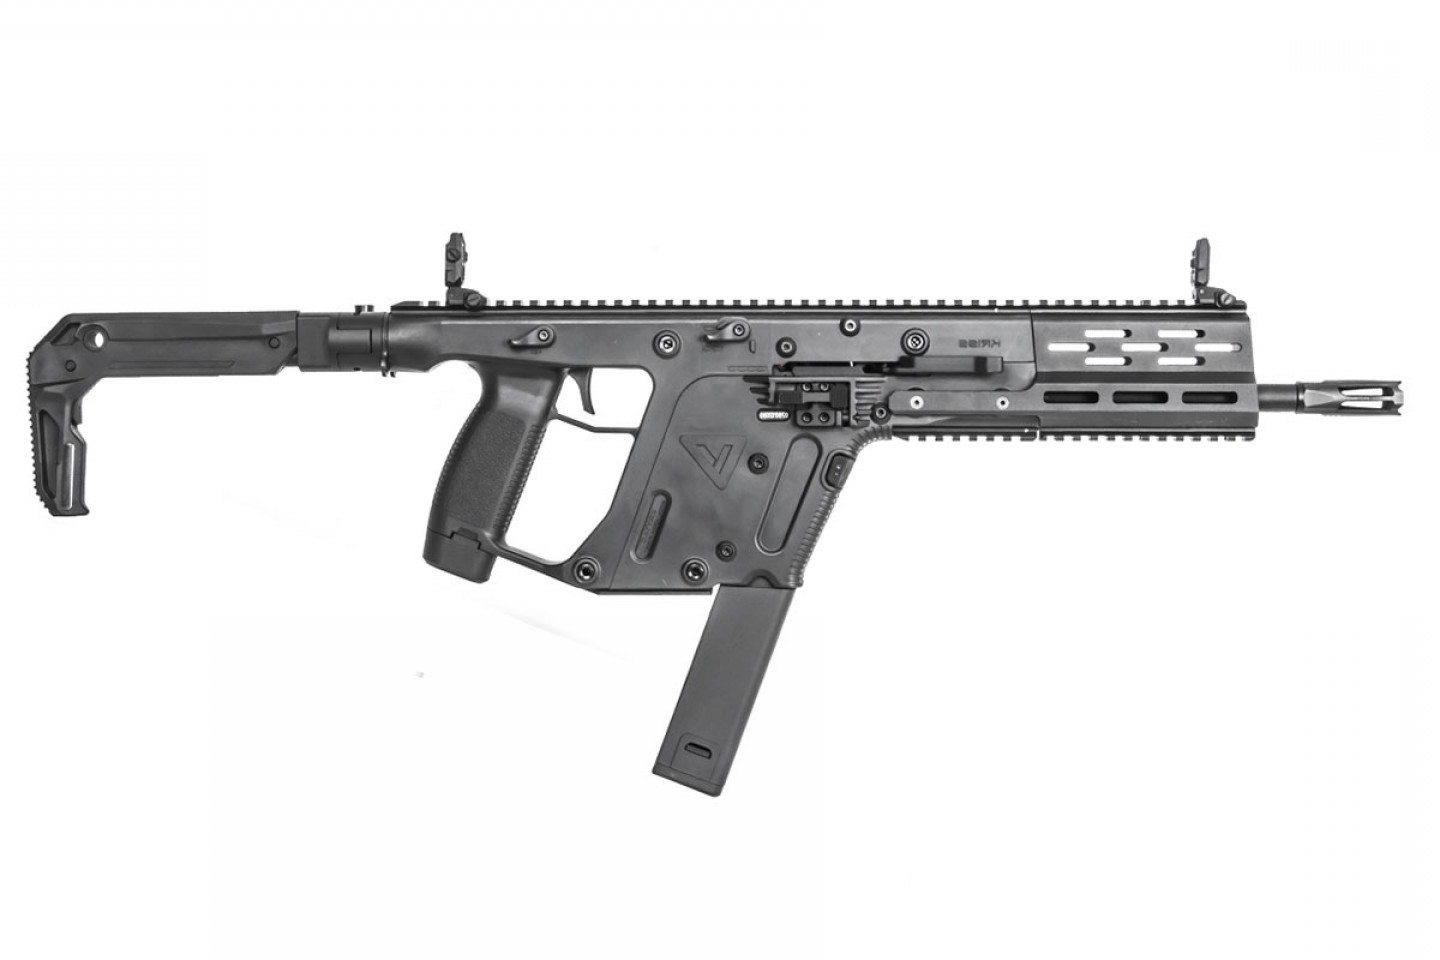 Kriss vector clipart image black and white Kriss Vector Parts And Accessories   SOIDERGI image black and white